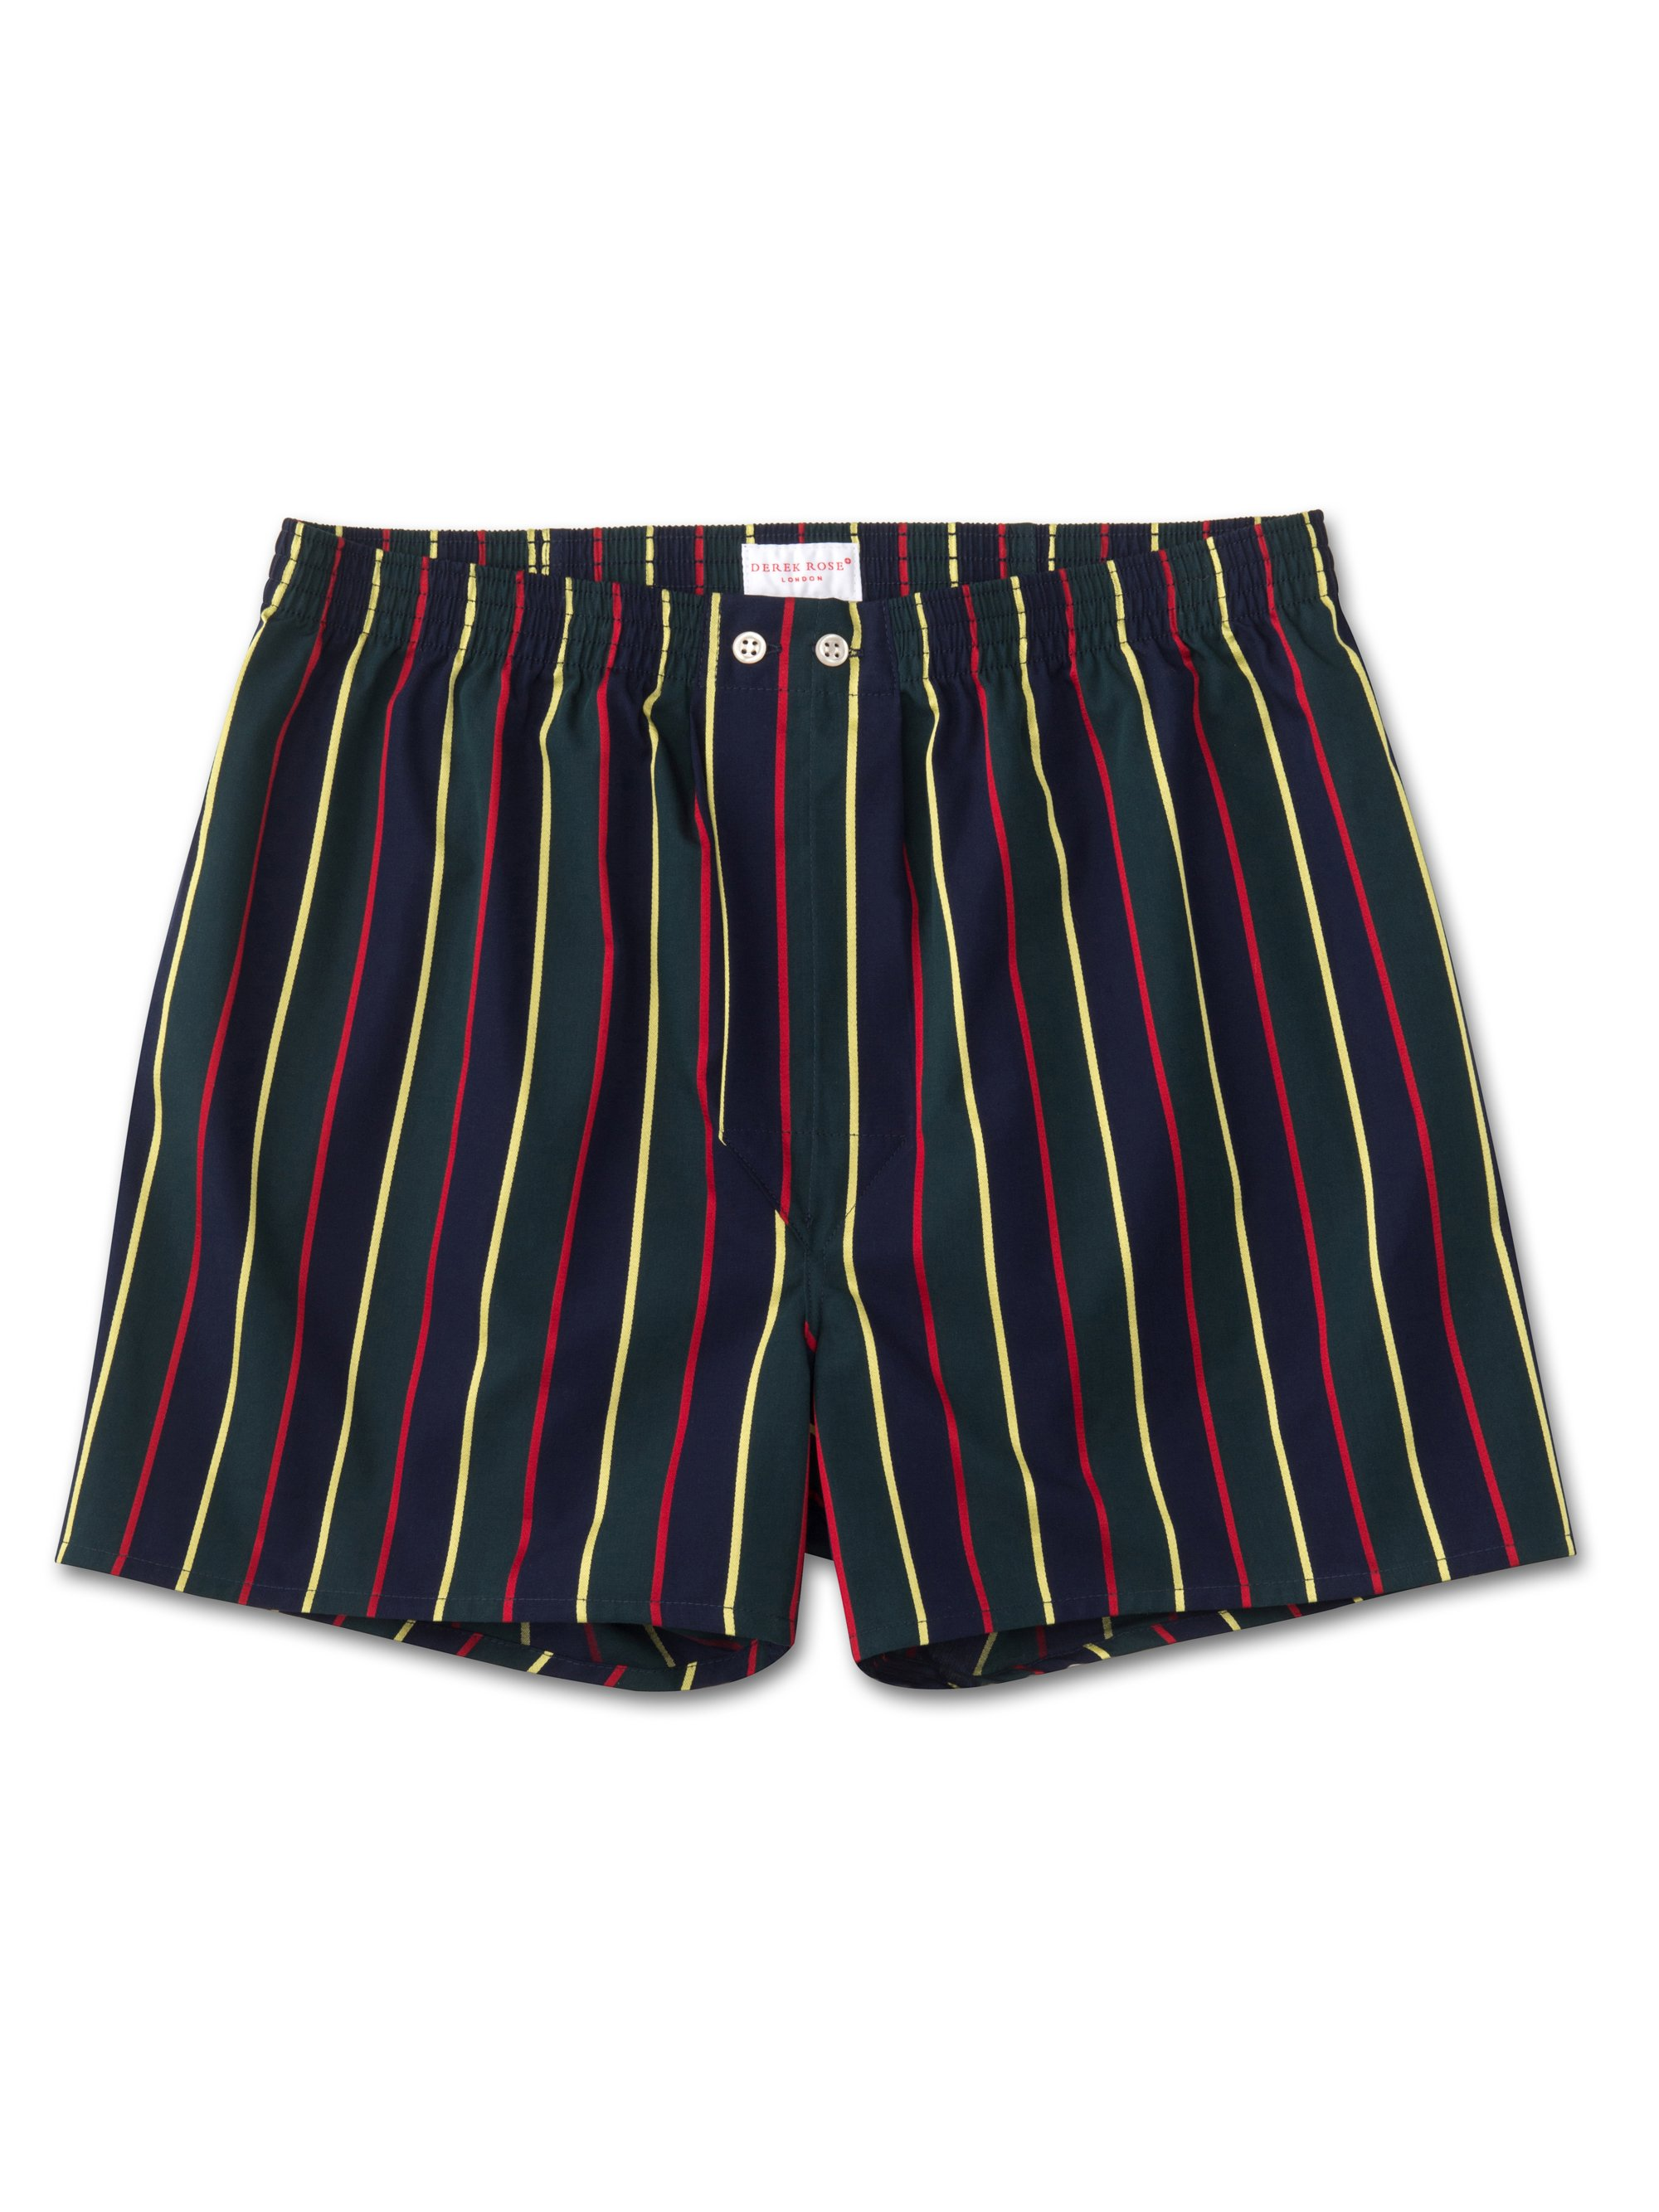 Men's Classic Fit Boxer Shorts Pure Cotton Satin Stripe Regimental ASH